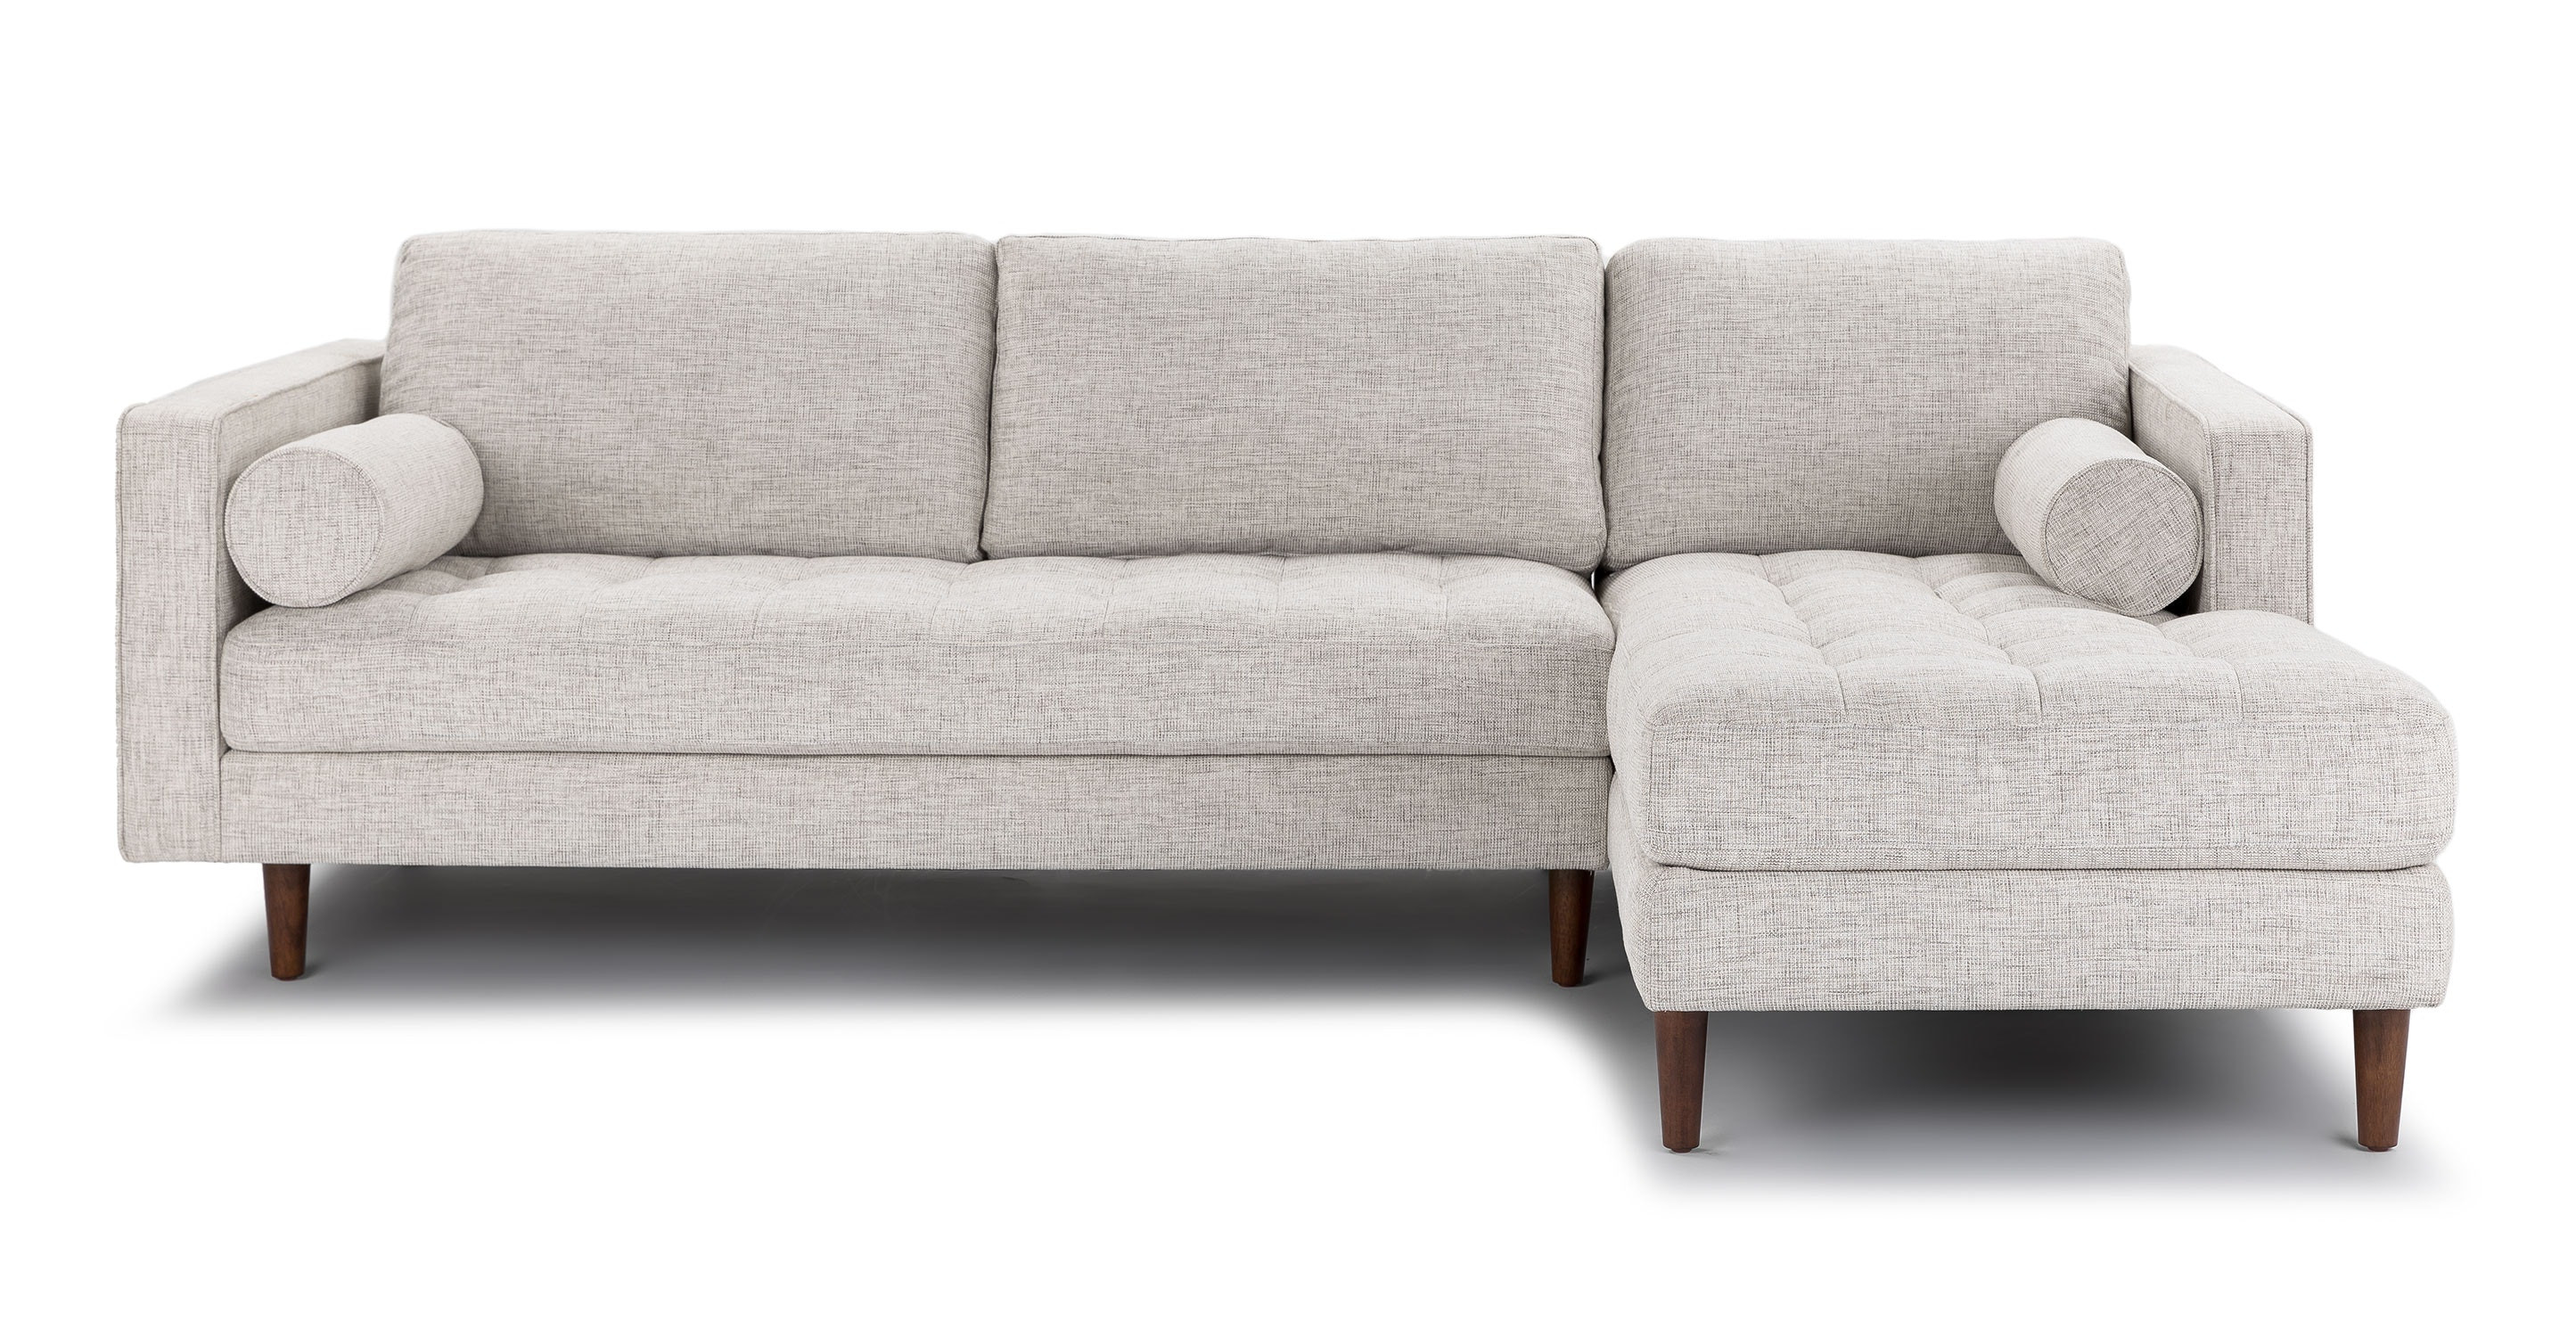 Upholstery cleaning (3 Seat Couch)